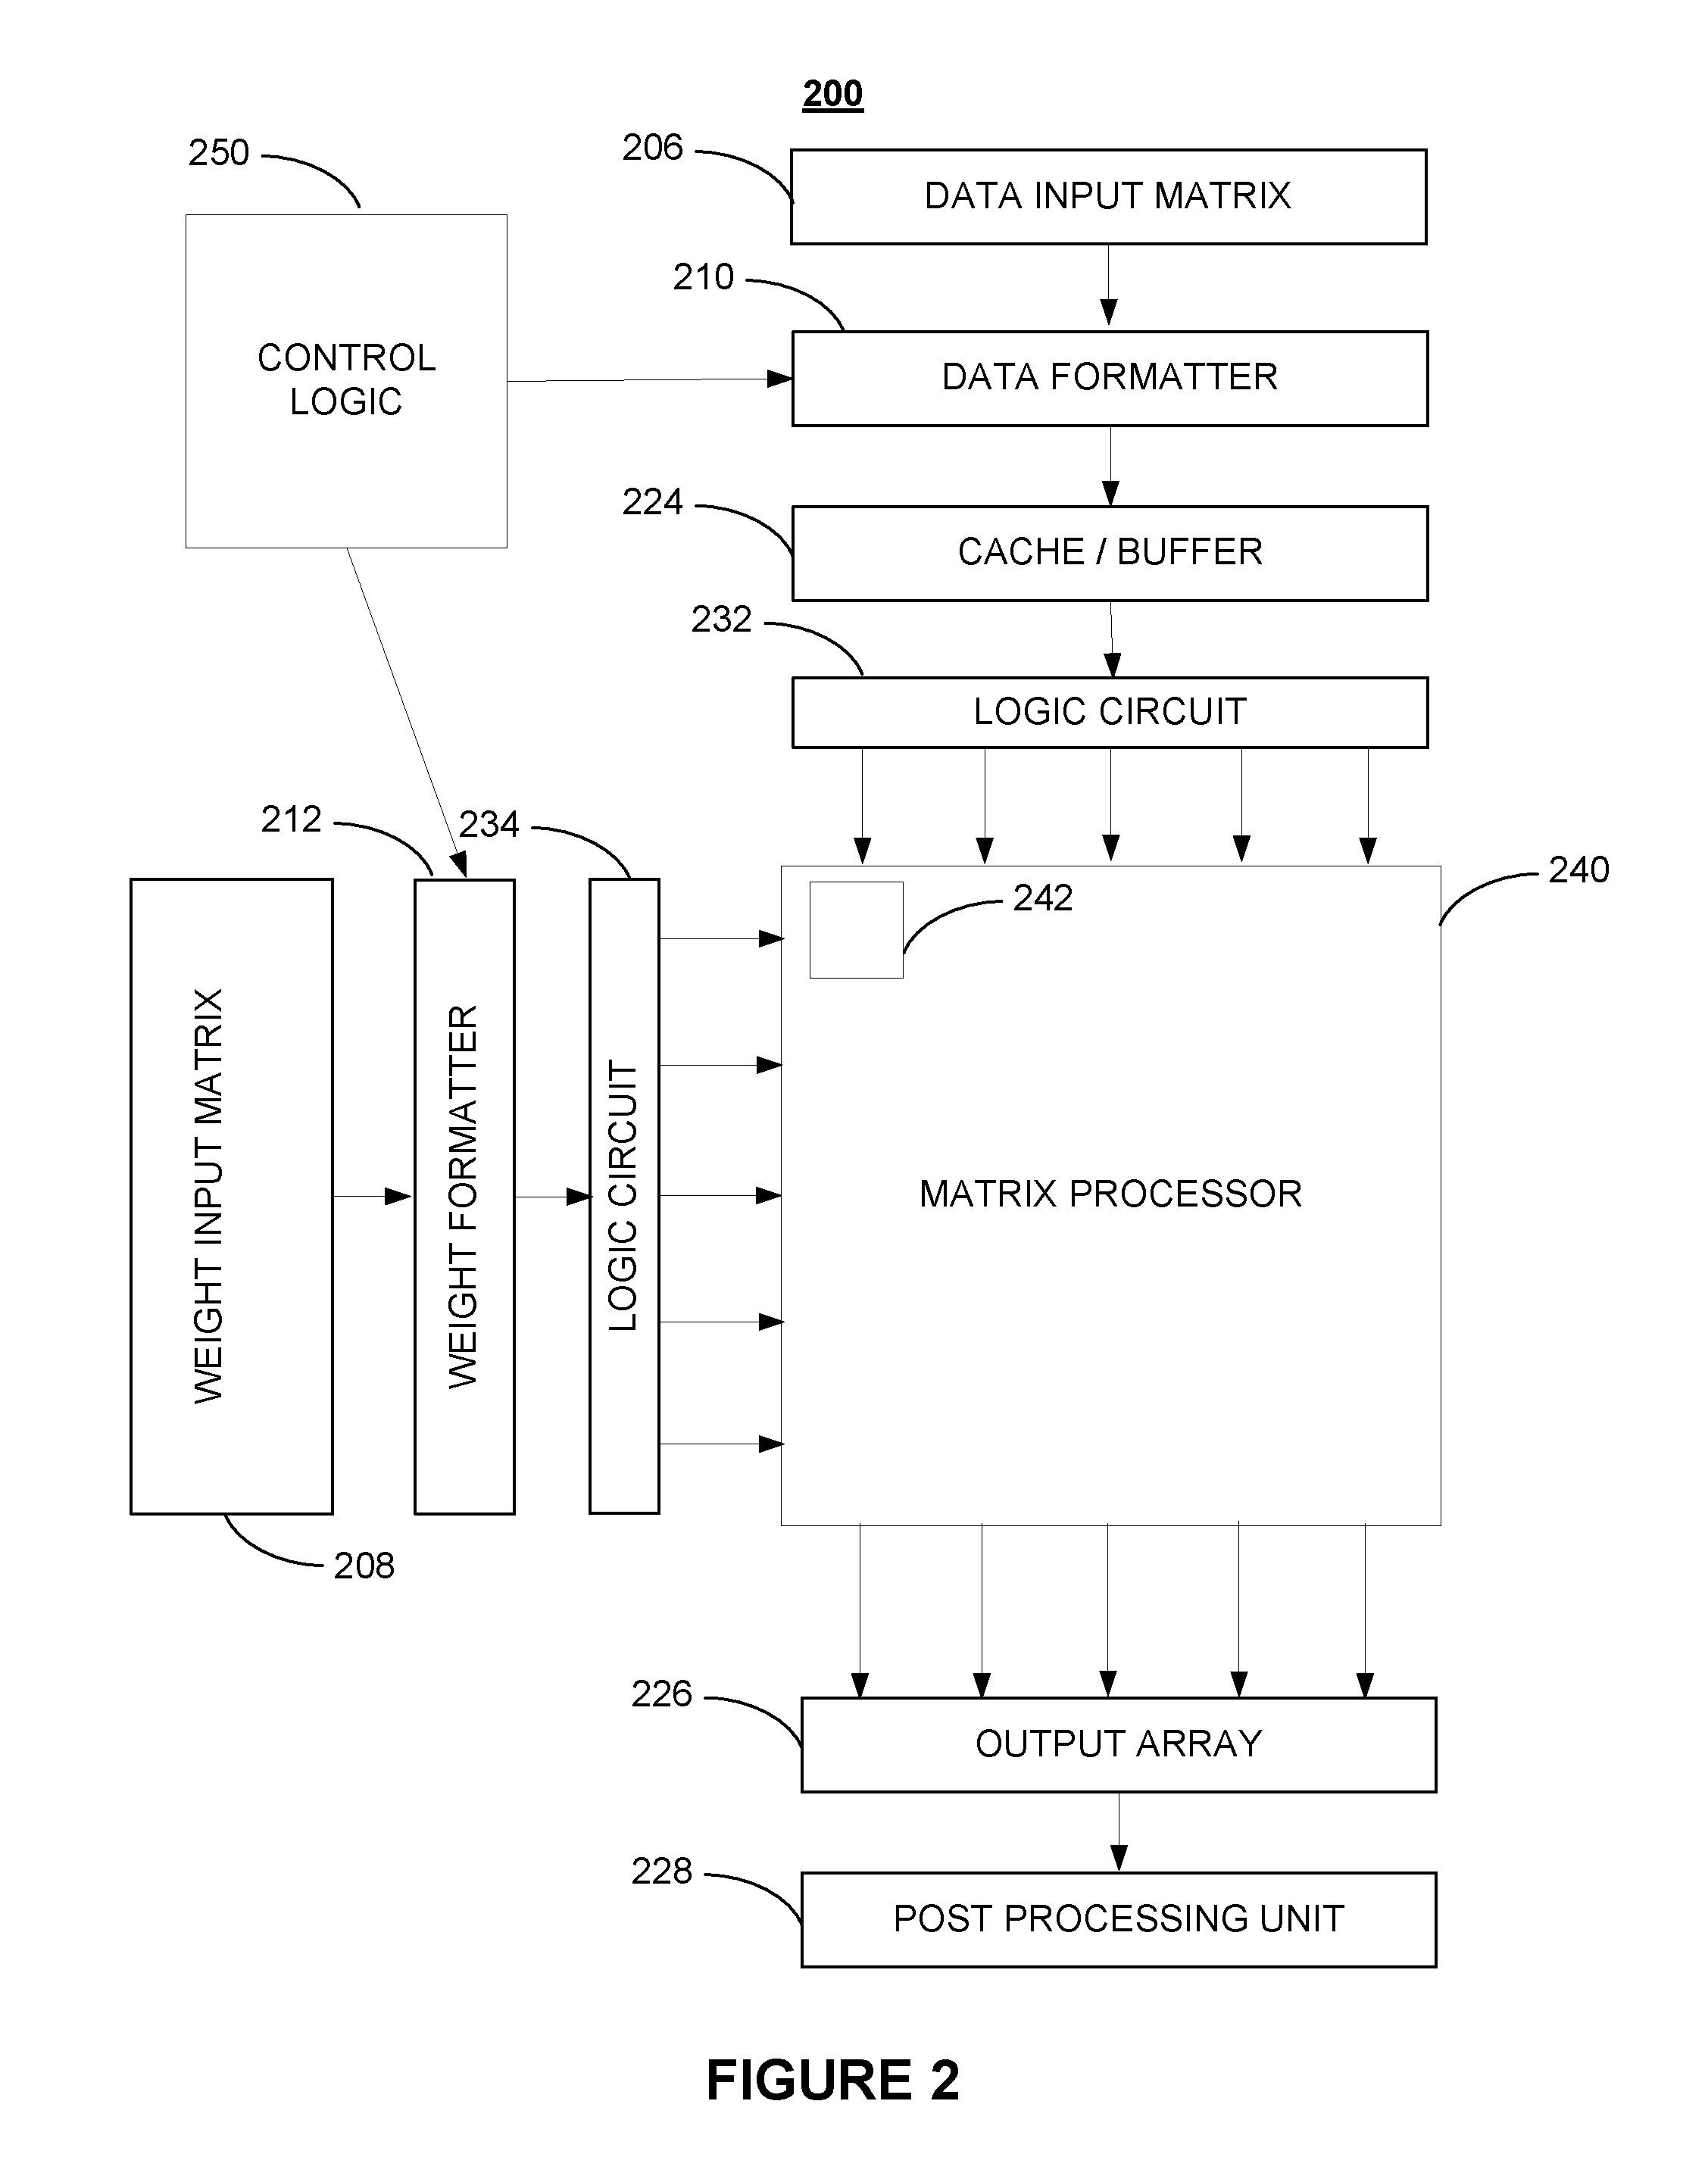 Tesla patent hints at Hardware 3's neural network